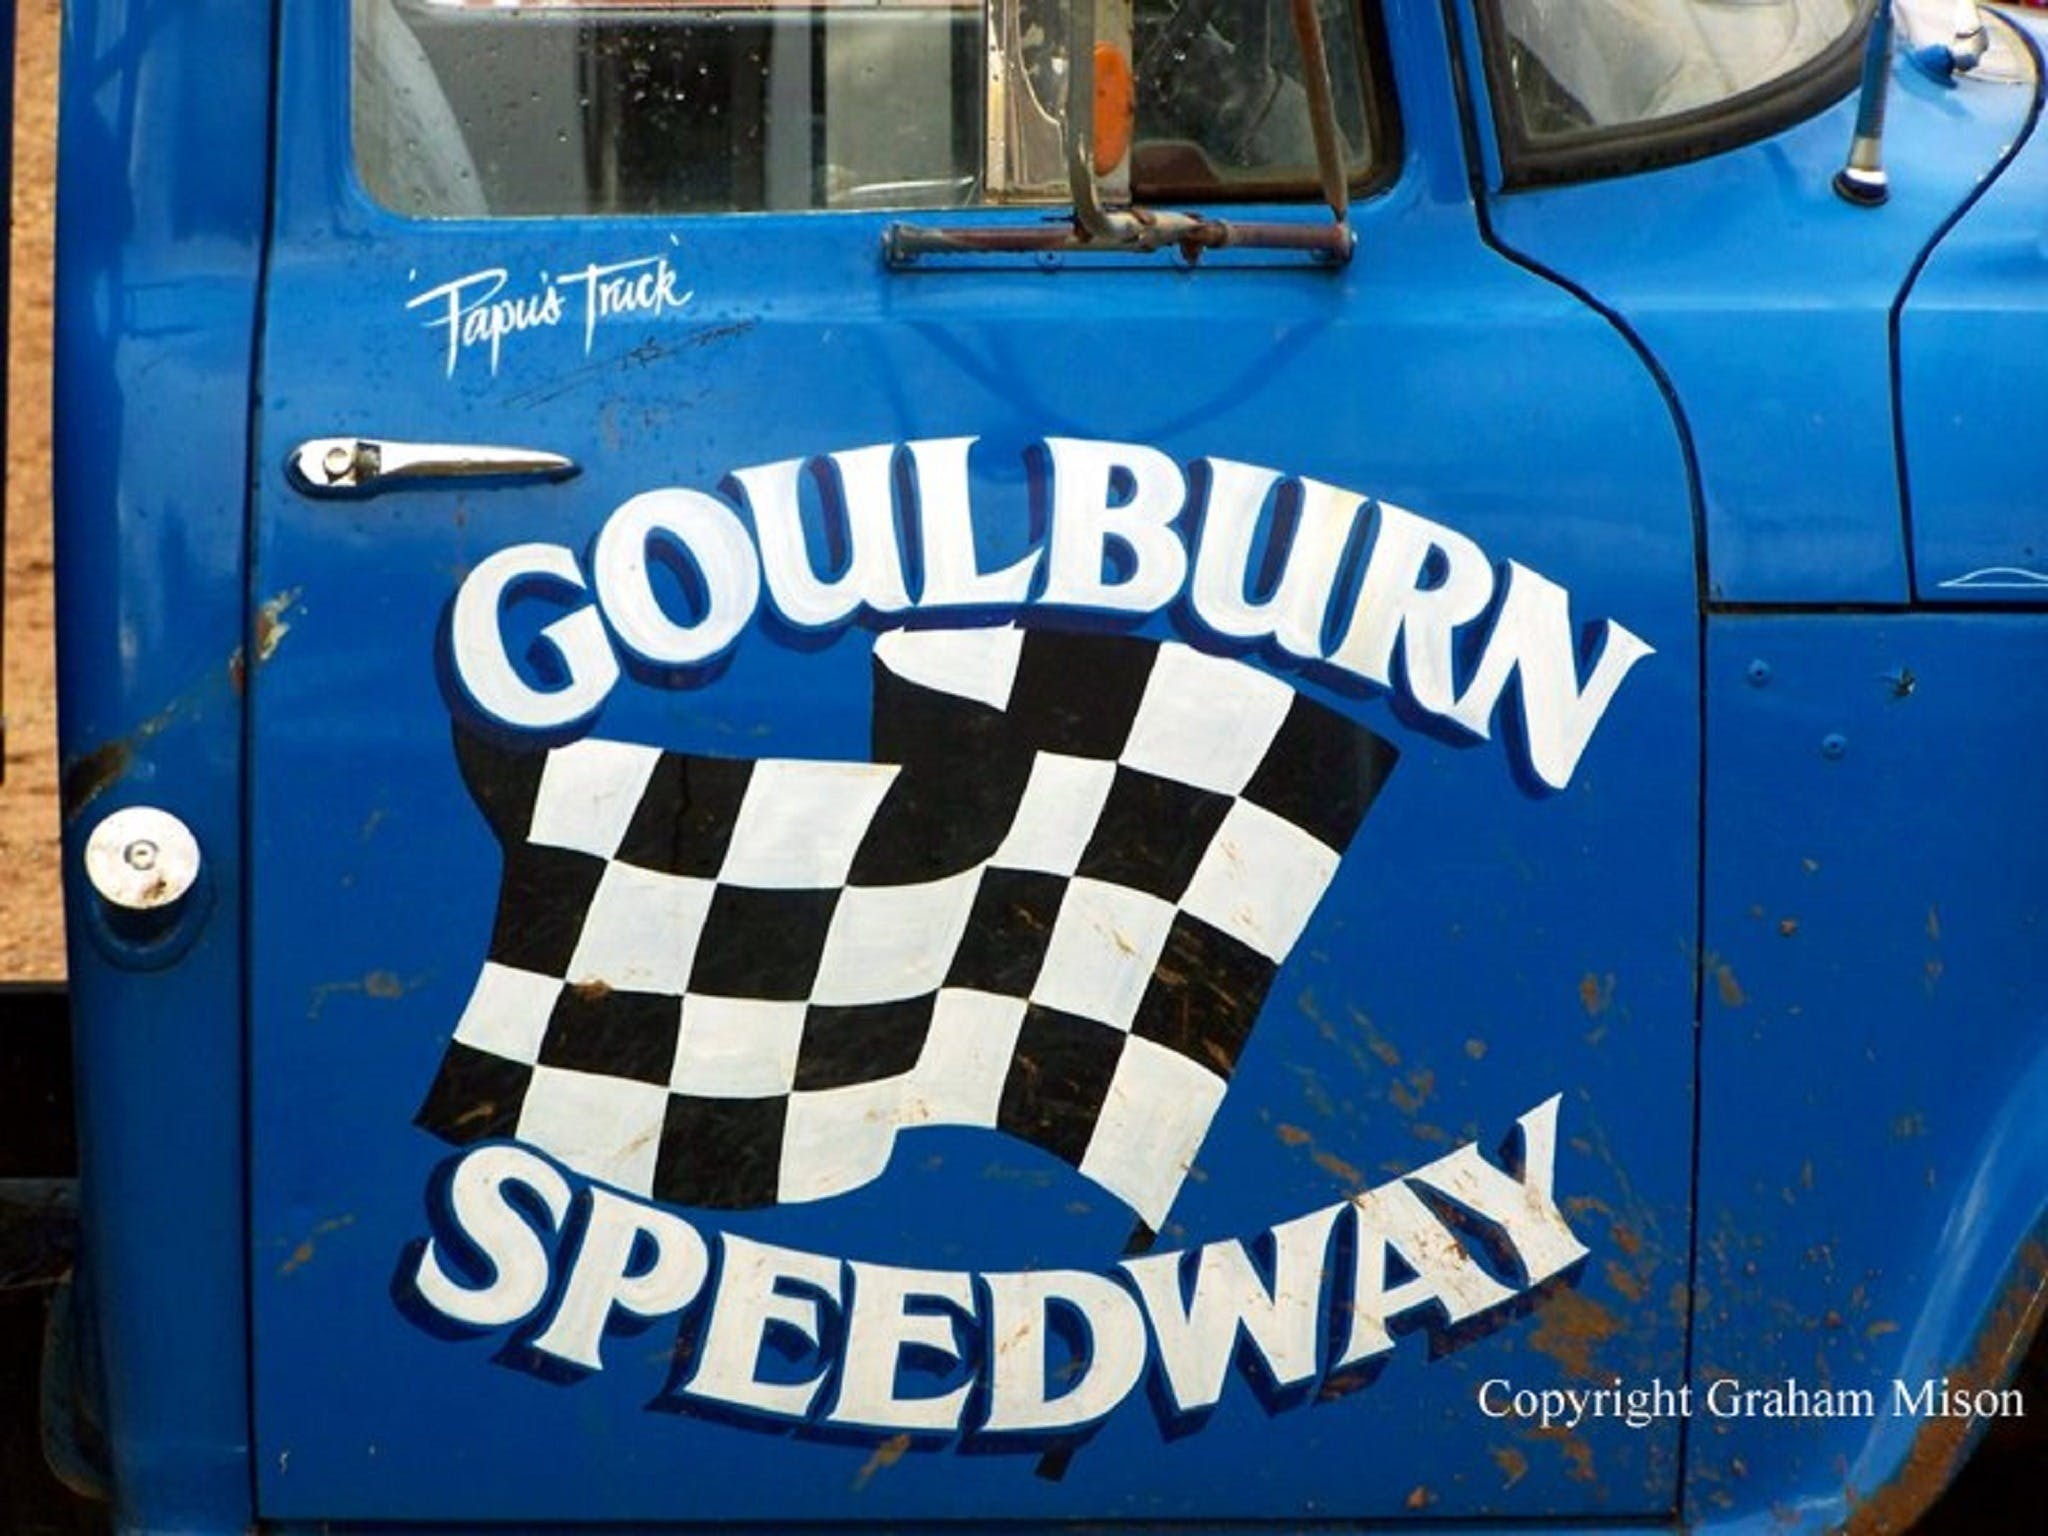 50 years of racing at Goulburn Speedway - Accommodation Mount Tamborine